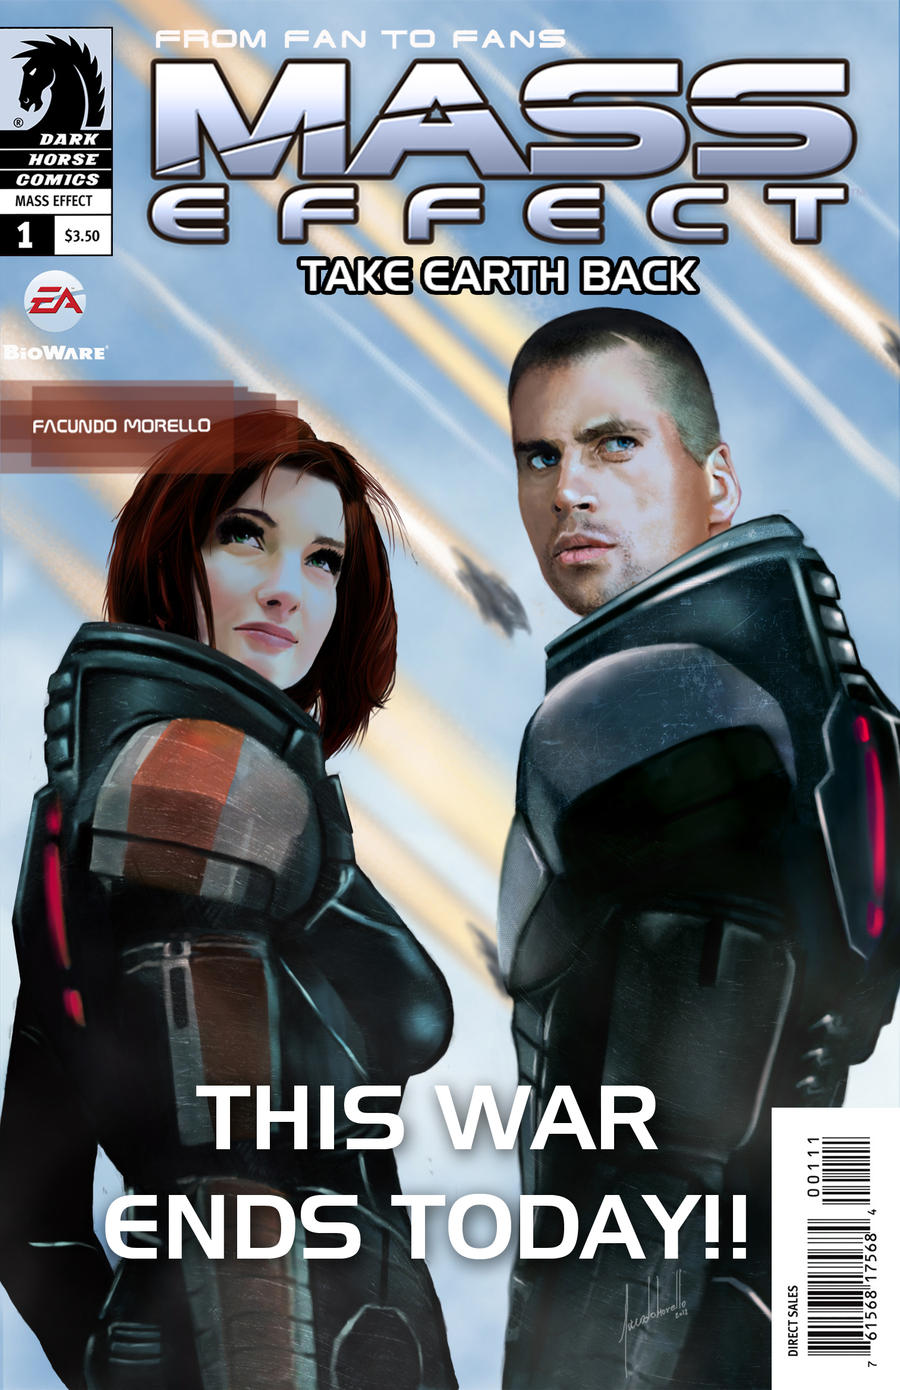 Mass effect 2 nackt porn download